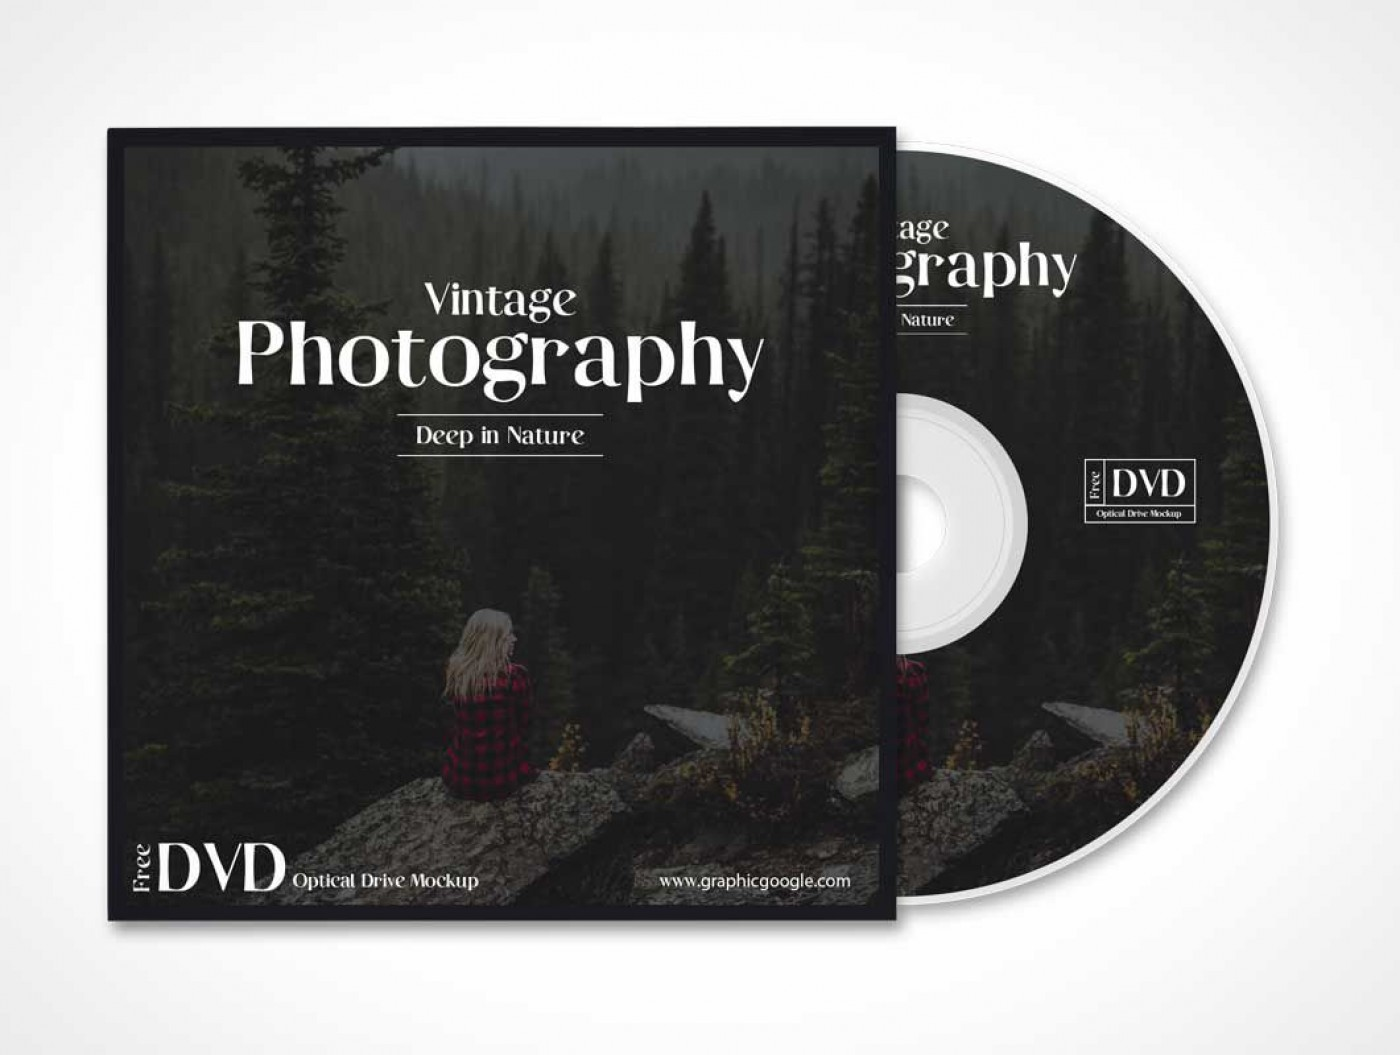 009 Impressive Music Cd Cover Design Template Free Download Example 1400